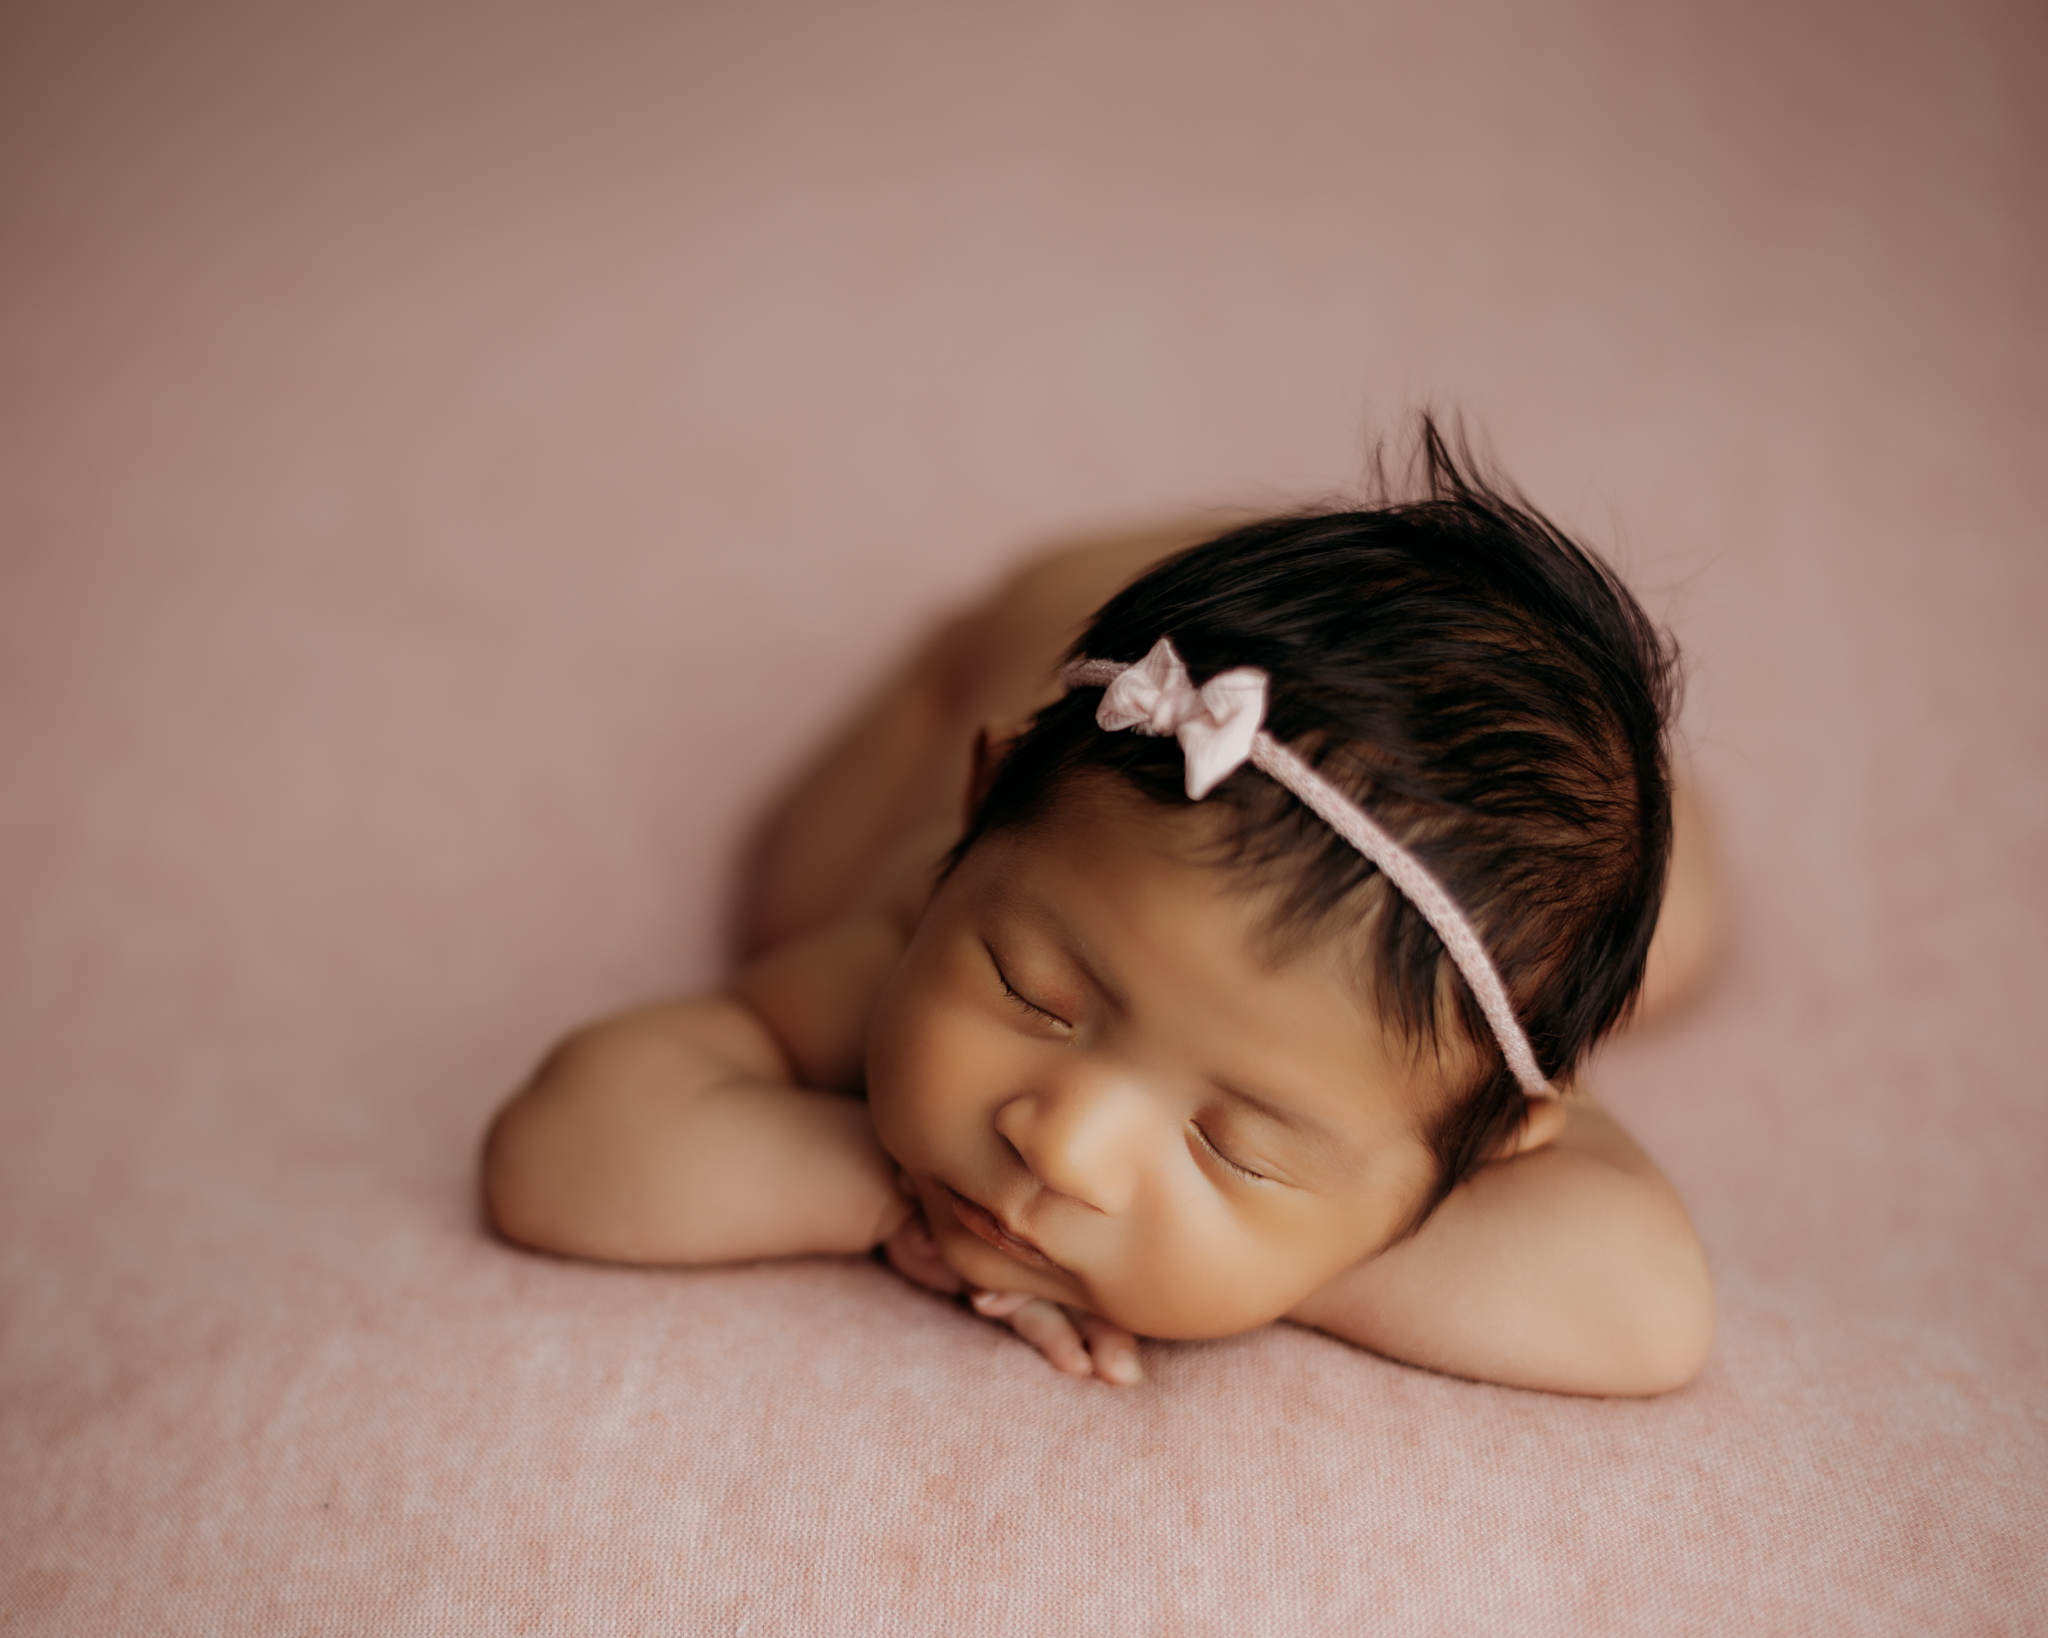 newborn on pink backdrop with head resting on hands